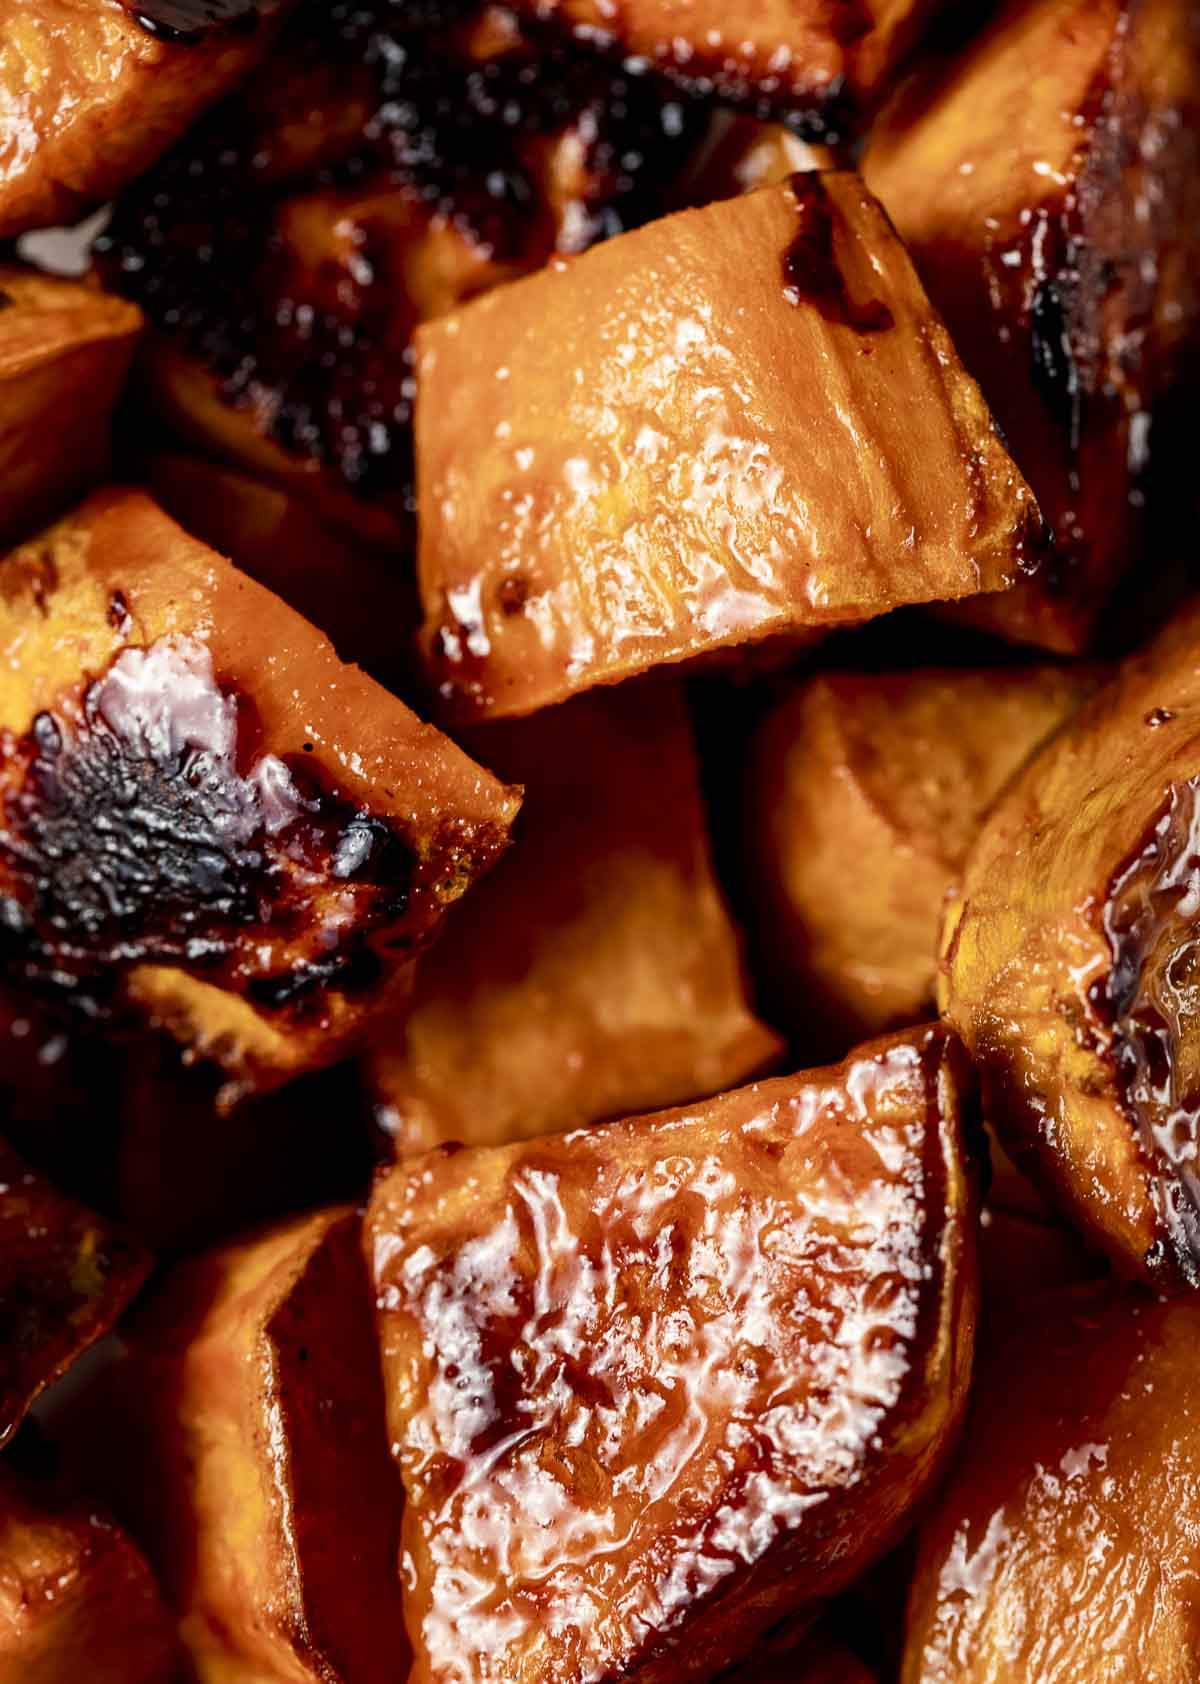 cubes of sweet potatoes in a brown colored glaze